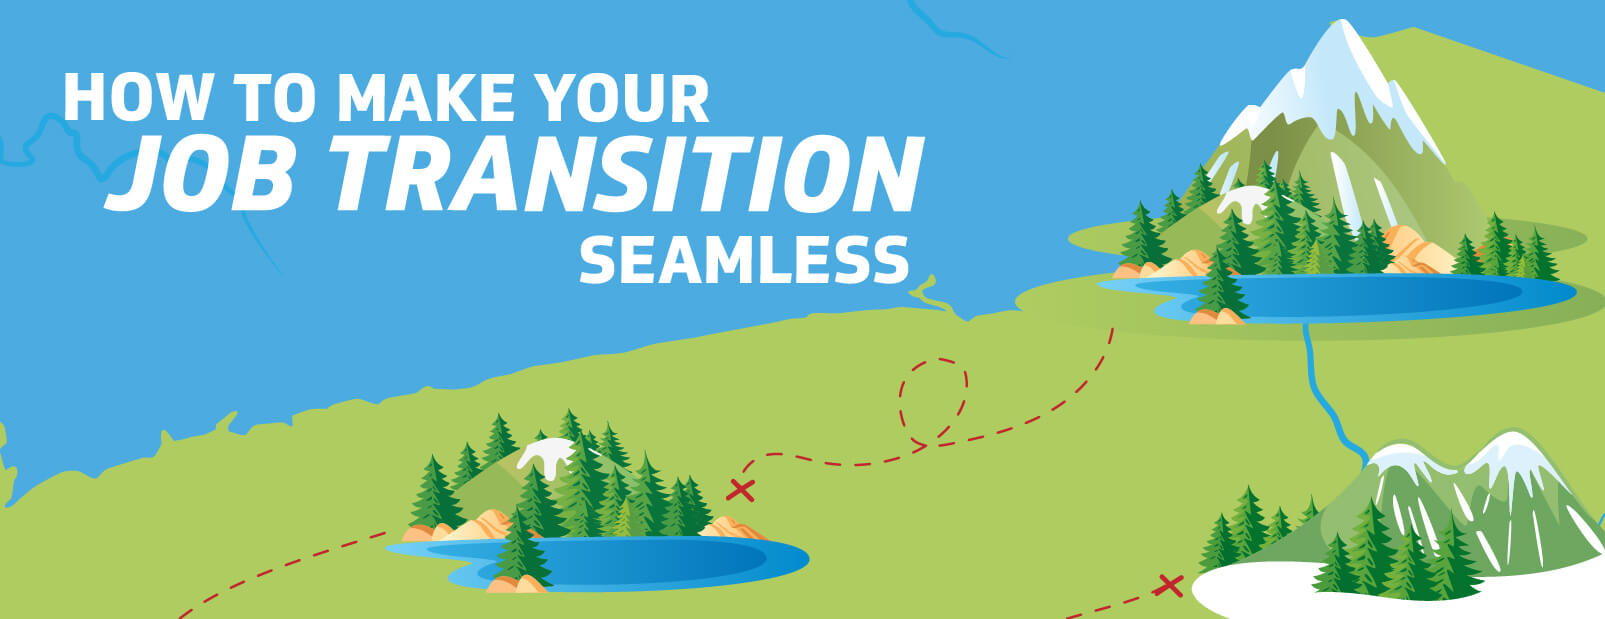 How to Make Your Job Transition Seamless